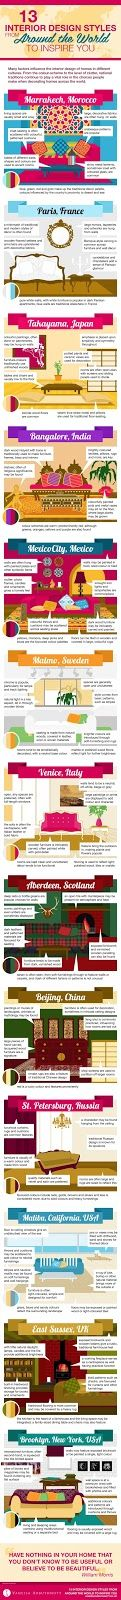 Crazy Infographics: 13 Interior Design Styles From Around The World To Inspire You (Infographic)